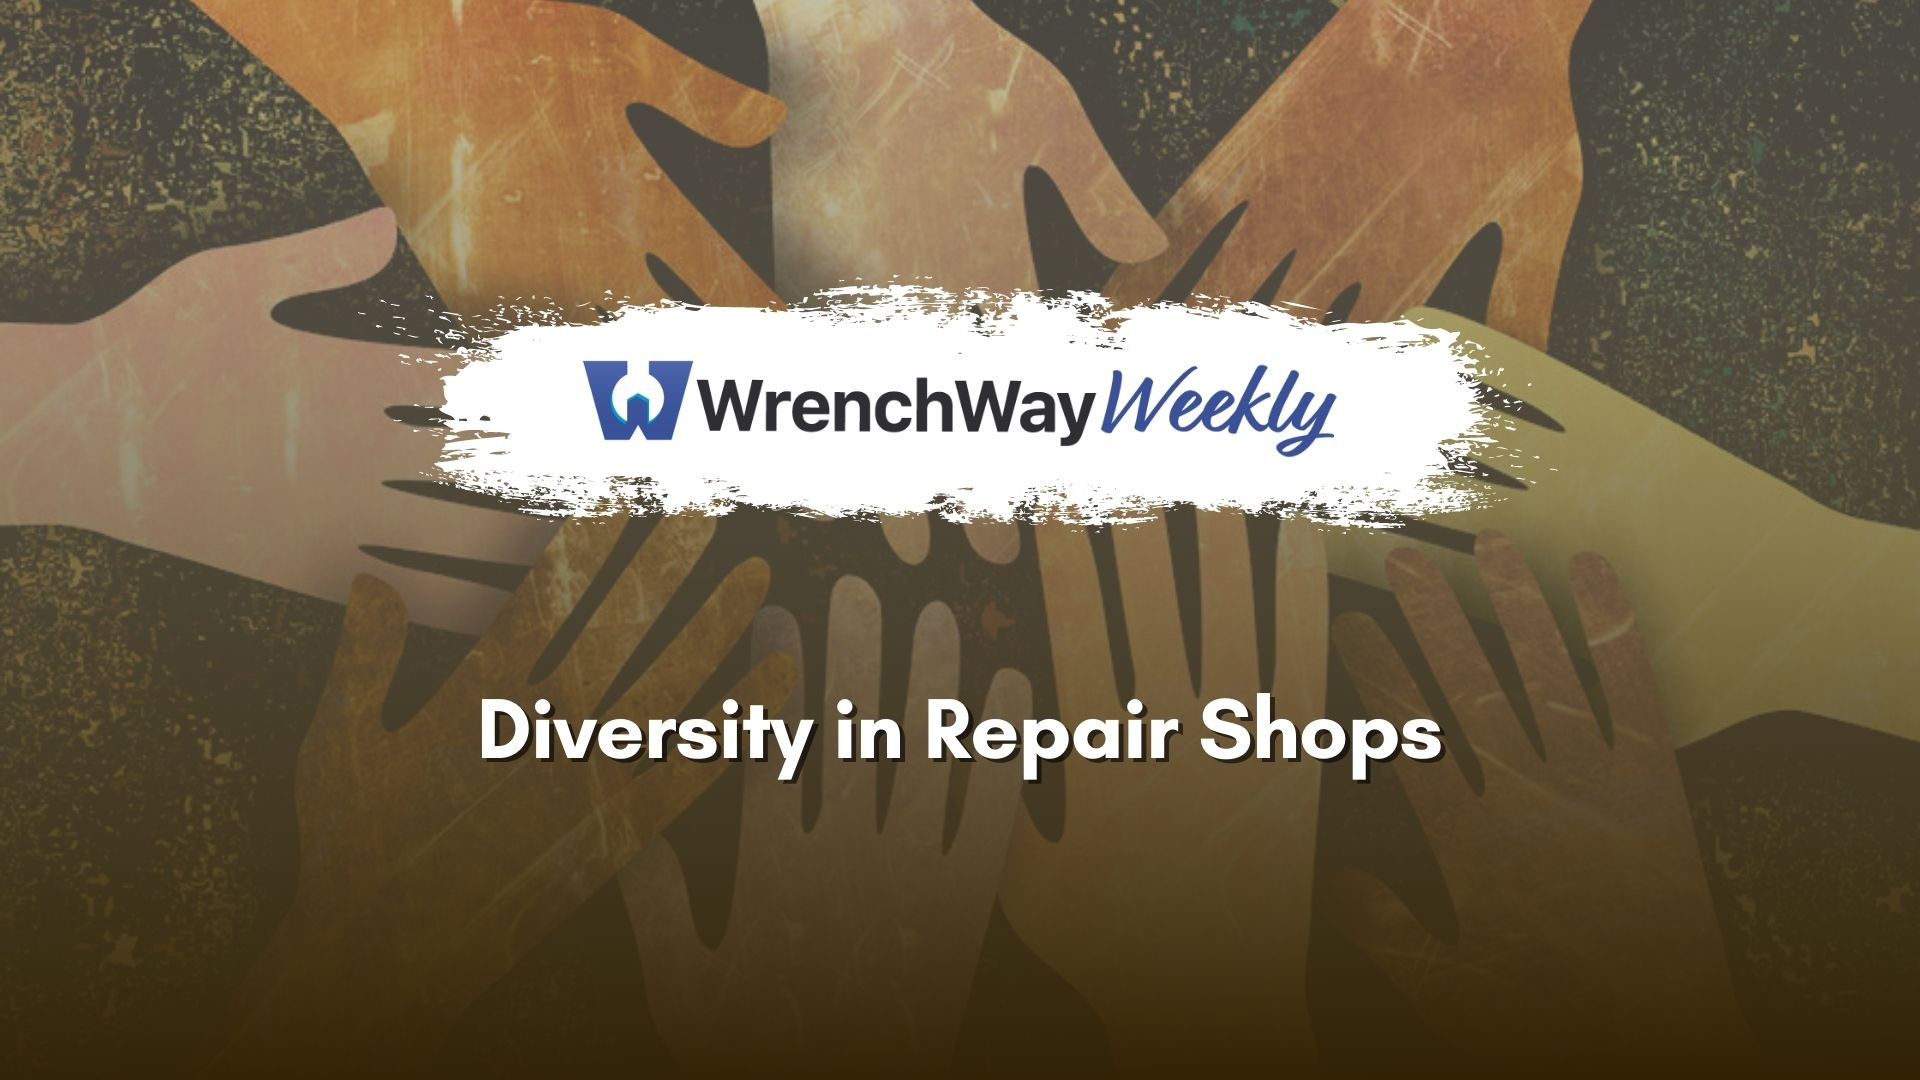 wrenchway weekly episode diversity in repair shops